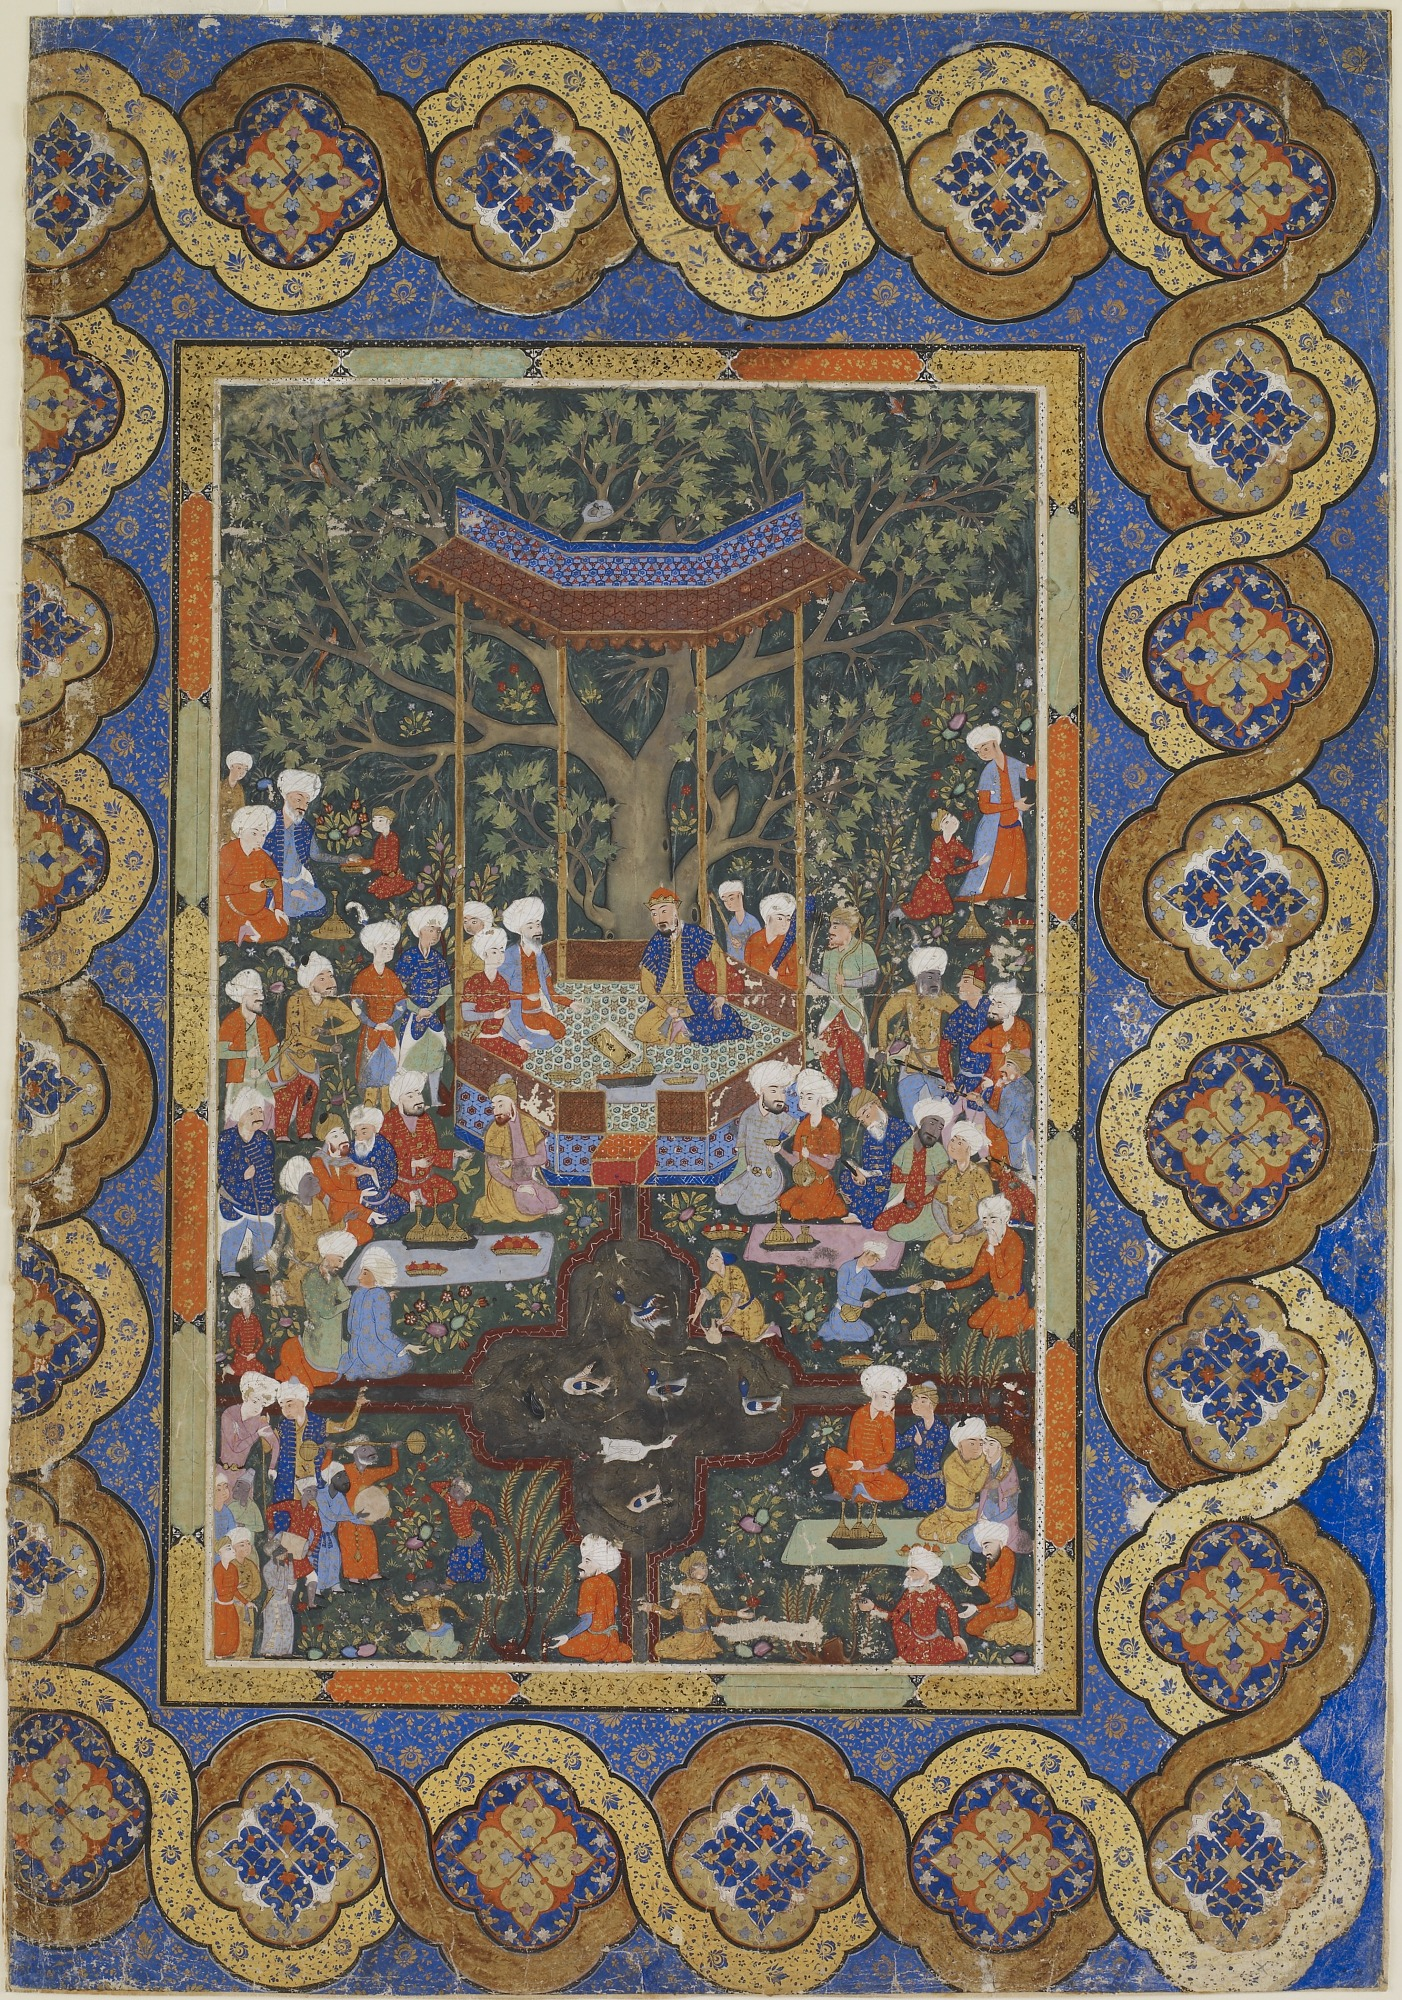 Folio from an unidentified text; A ruler in a garden pavilion surrounded by courtiers and attendants